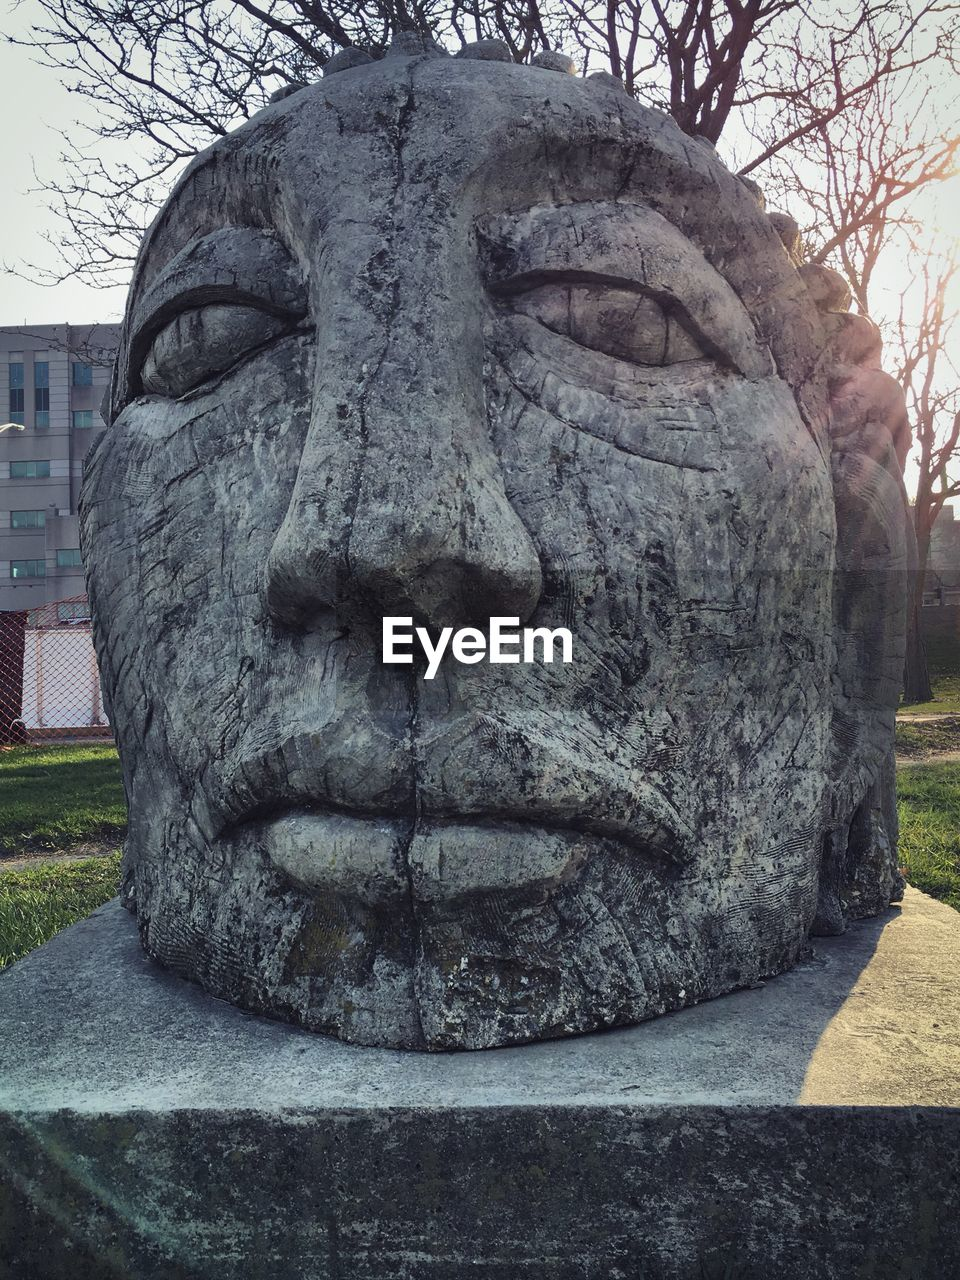 art and craft, sculpture, representation, creativity, craft, statue, architecture, human representation, day, no people, carving - craft product, close-up, park, face, male likeness, park - man made space, built structure, stone material, tree, carving